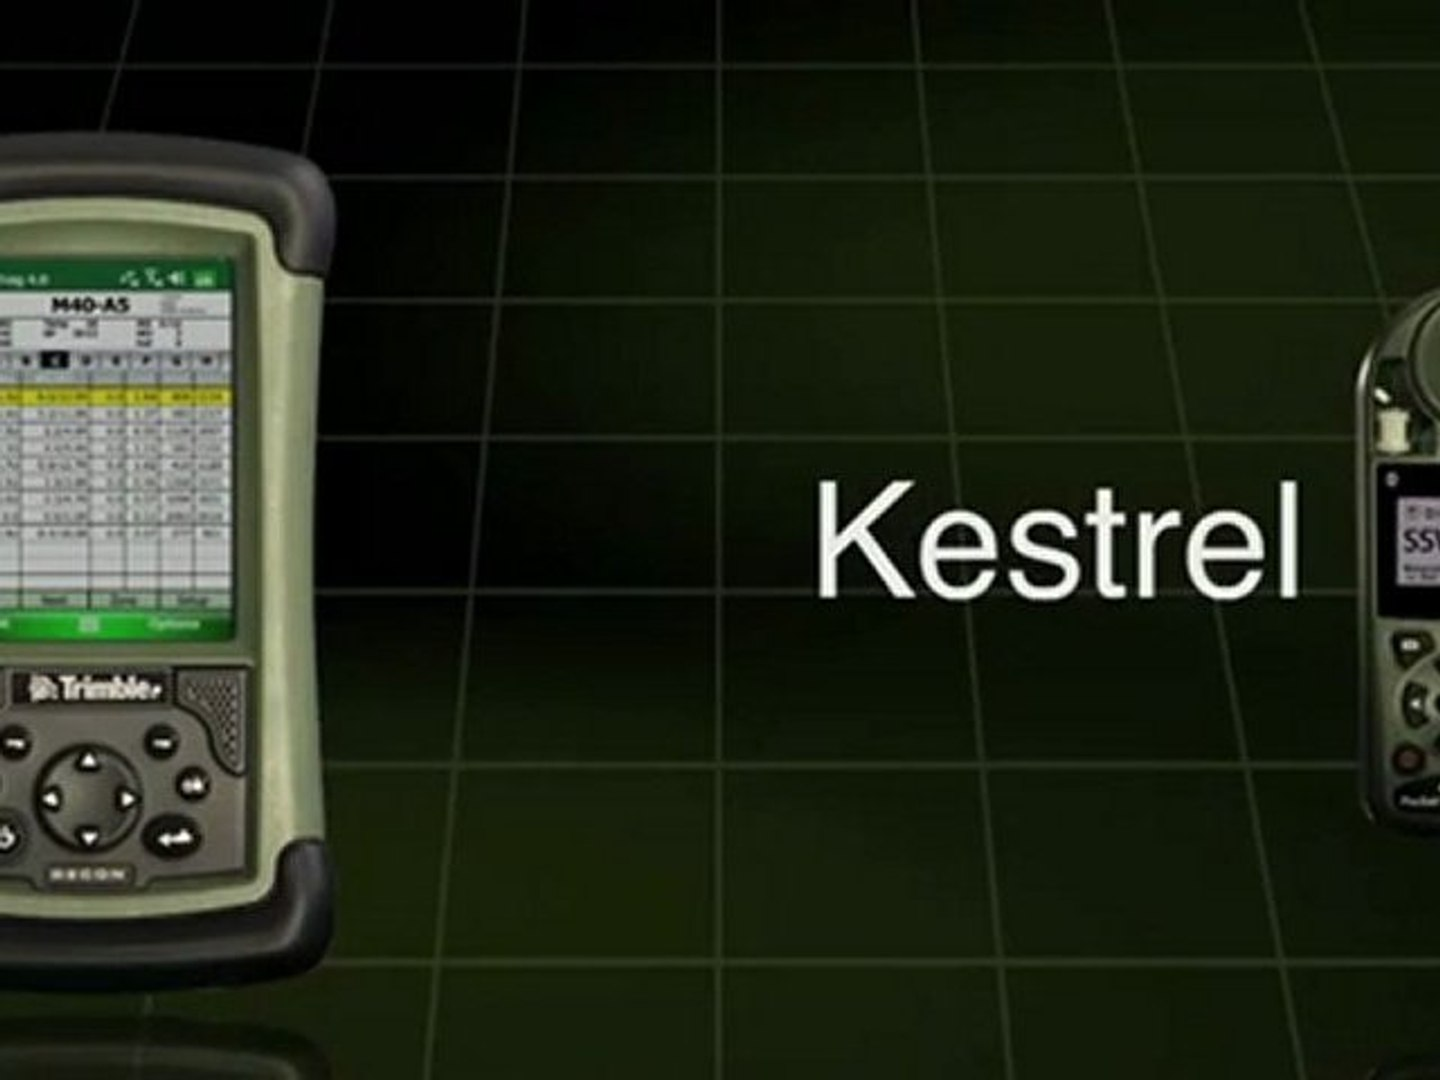 Balistic Calculator PDA – Horus and Kestrel, Together in O